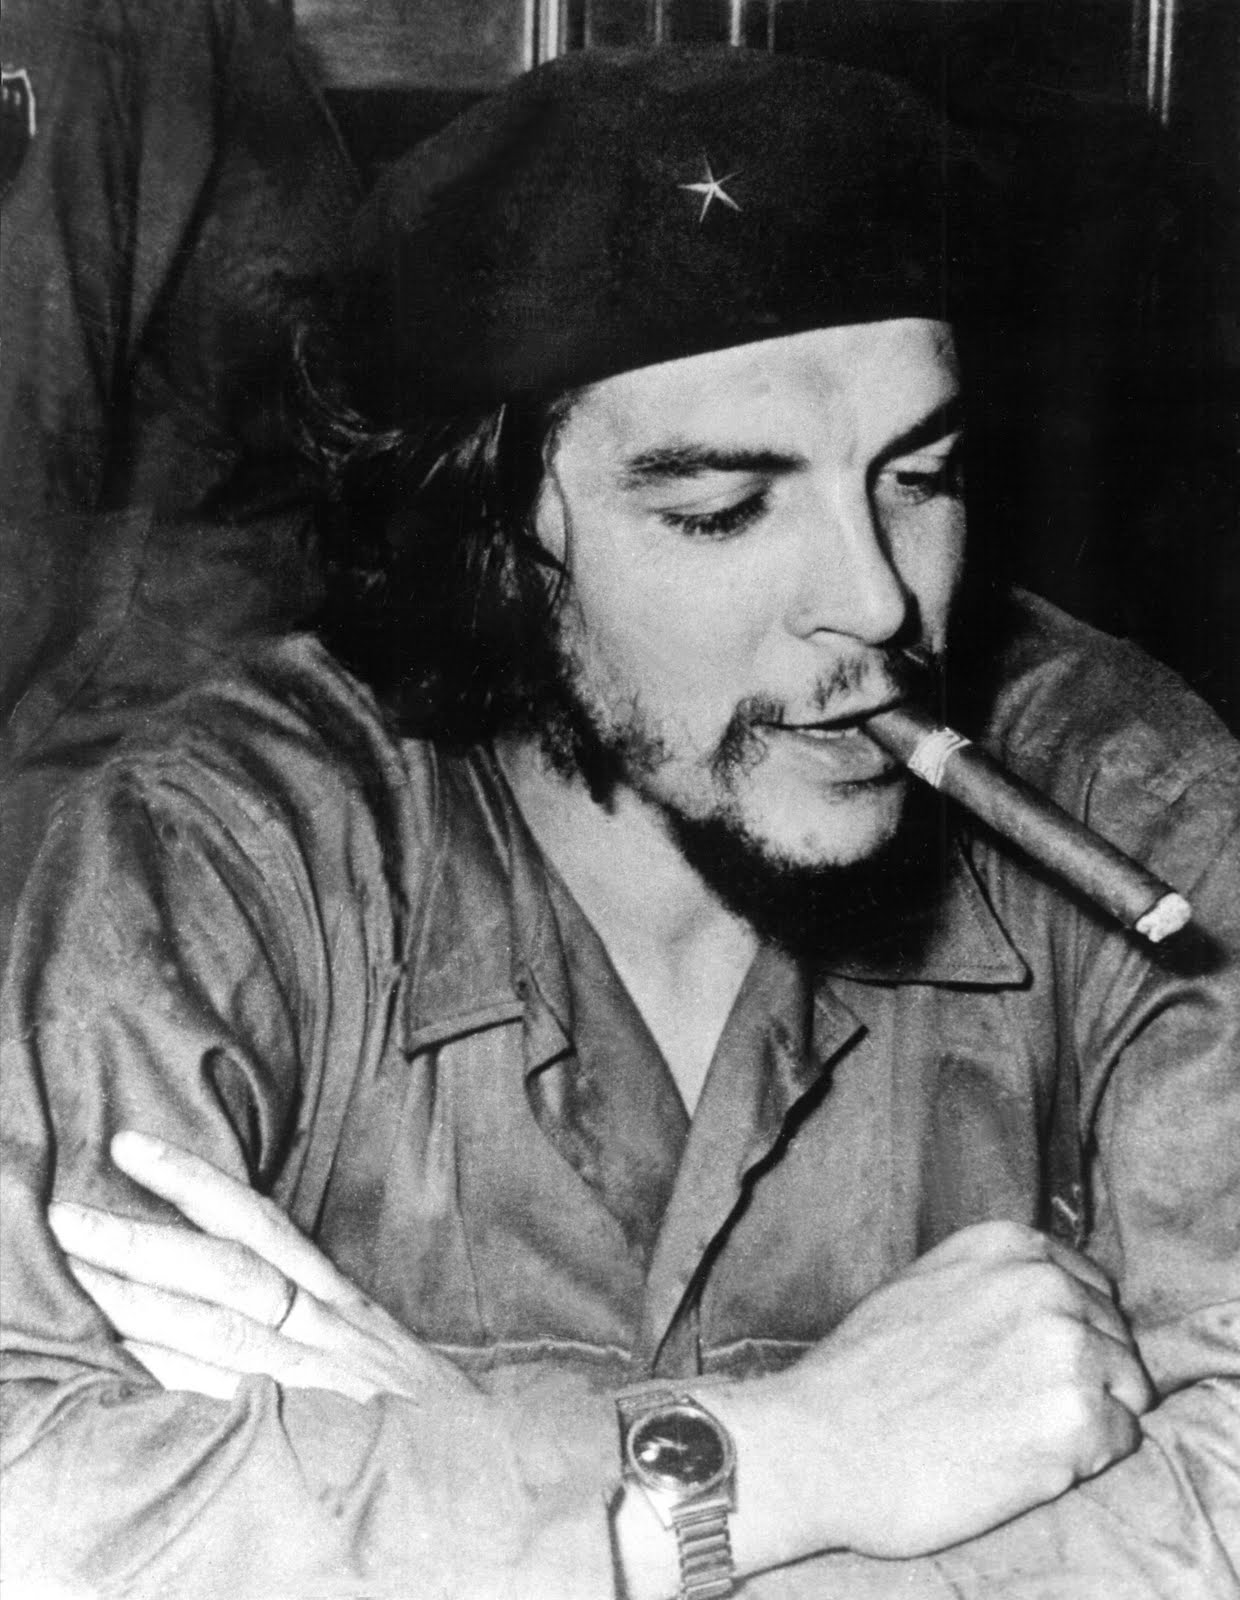 ernest che guevara The horoscope was confounding if the famous guerrilla revolutionary ernesto che guevara was born on june 14, 1928, as stated on his birth certificate.